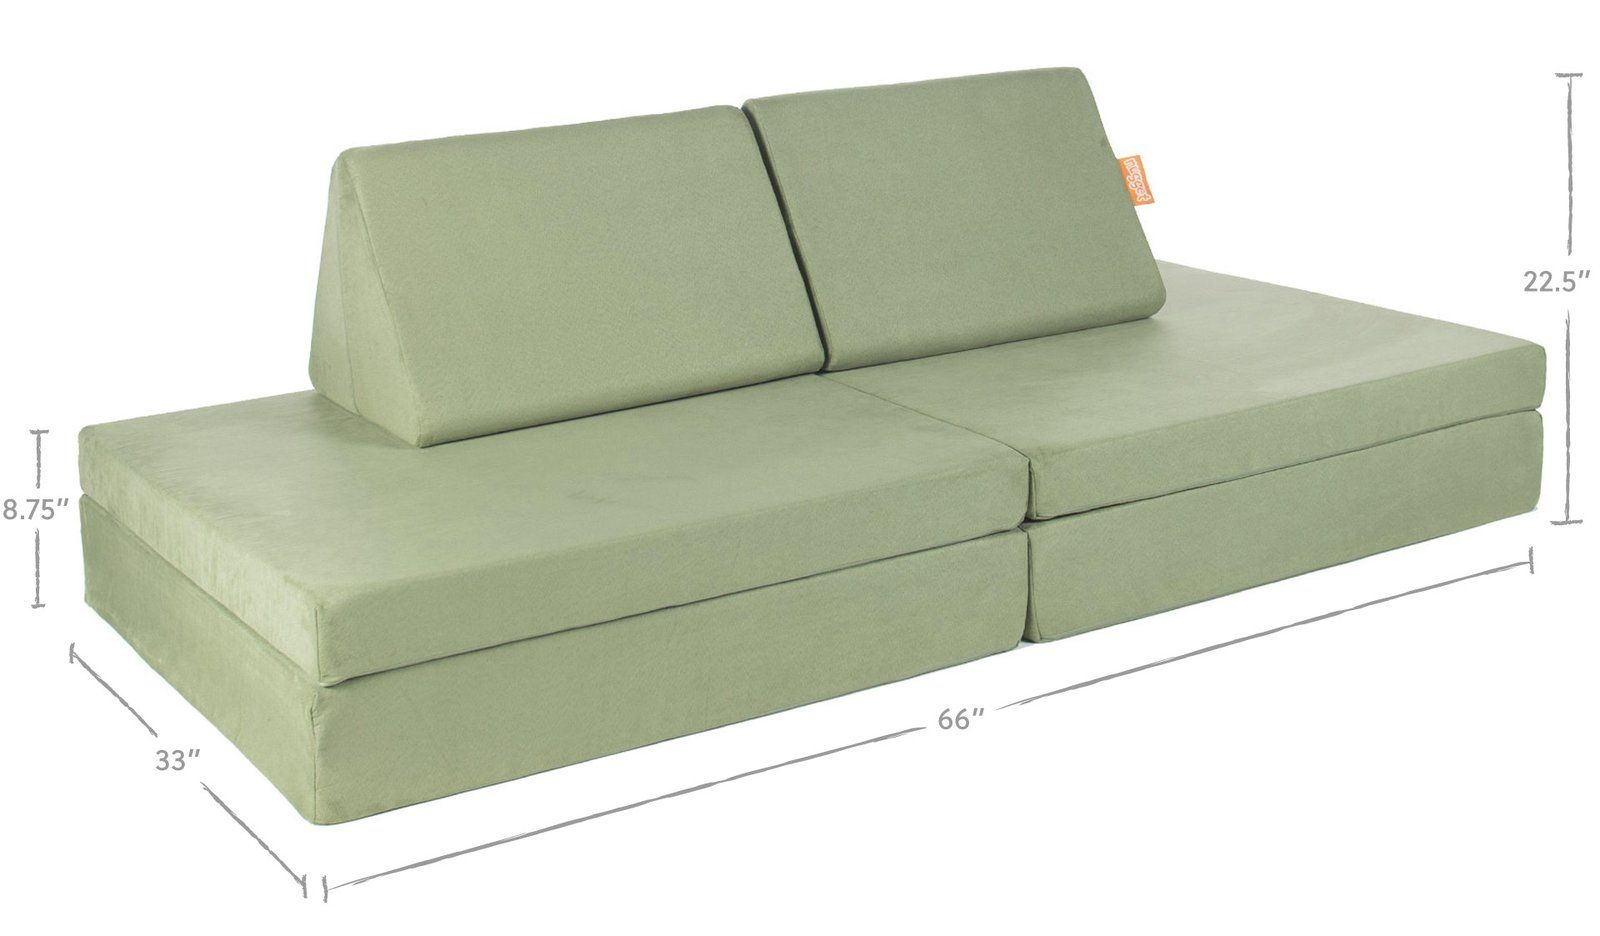 Nugget Couch Weight - Anna Furniture